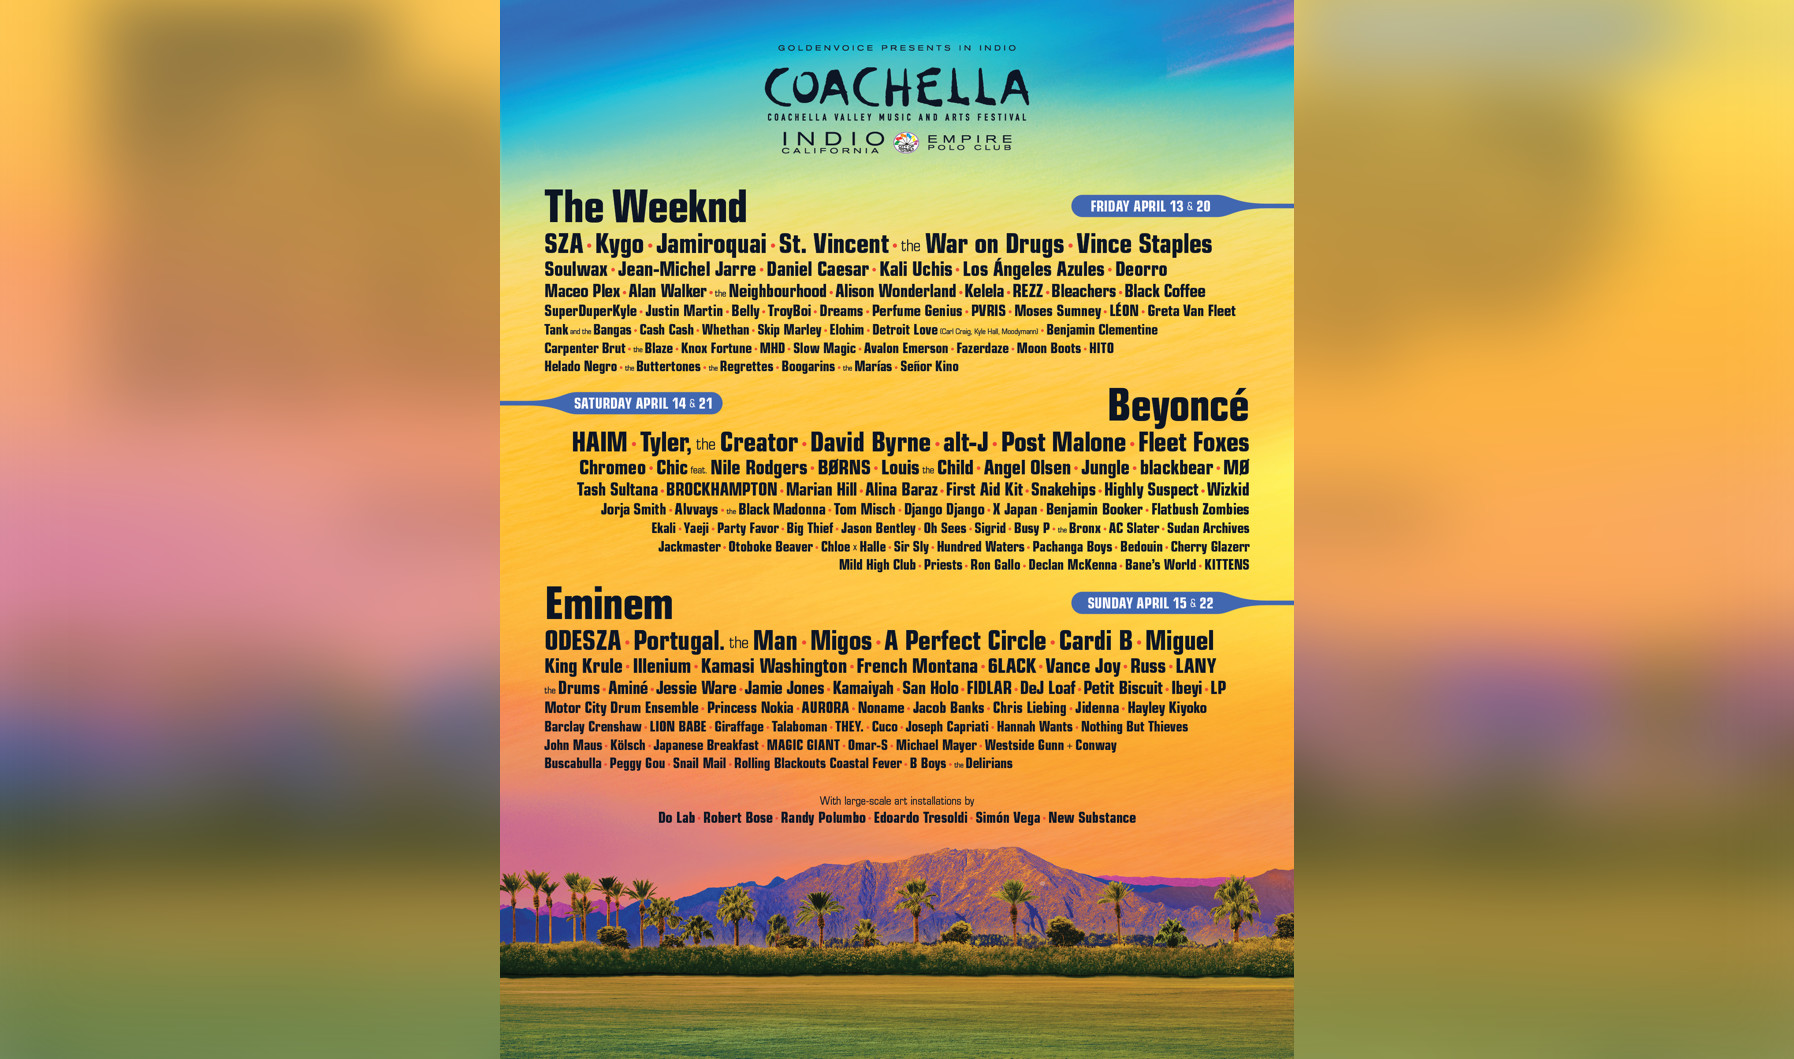 Coachella 2018 Full Lineup